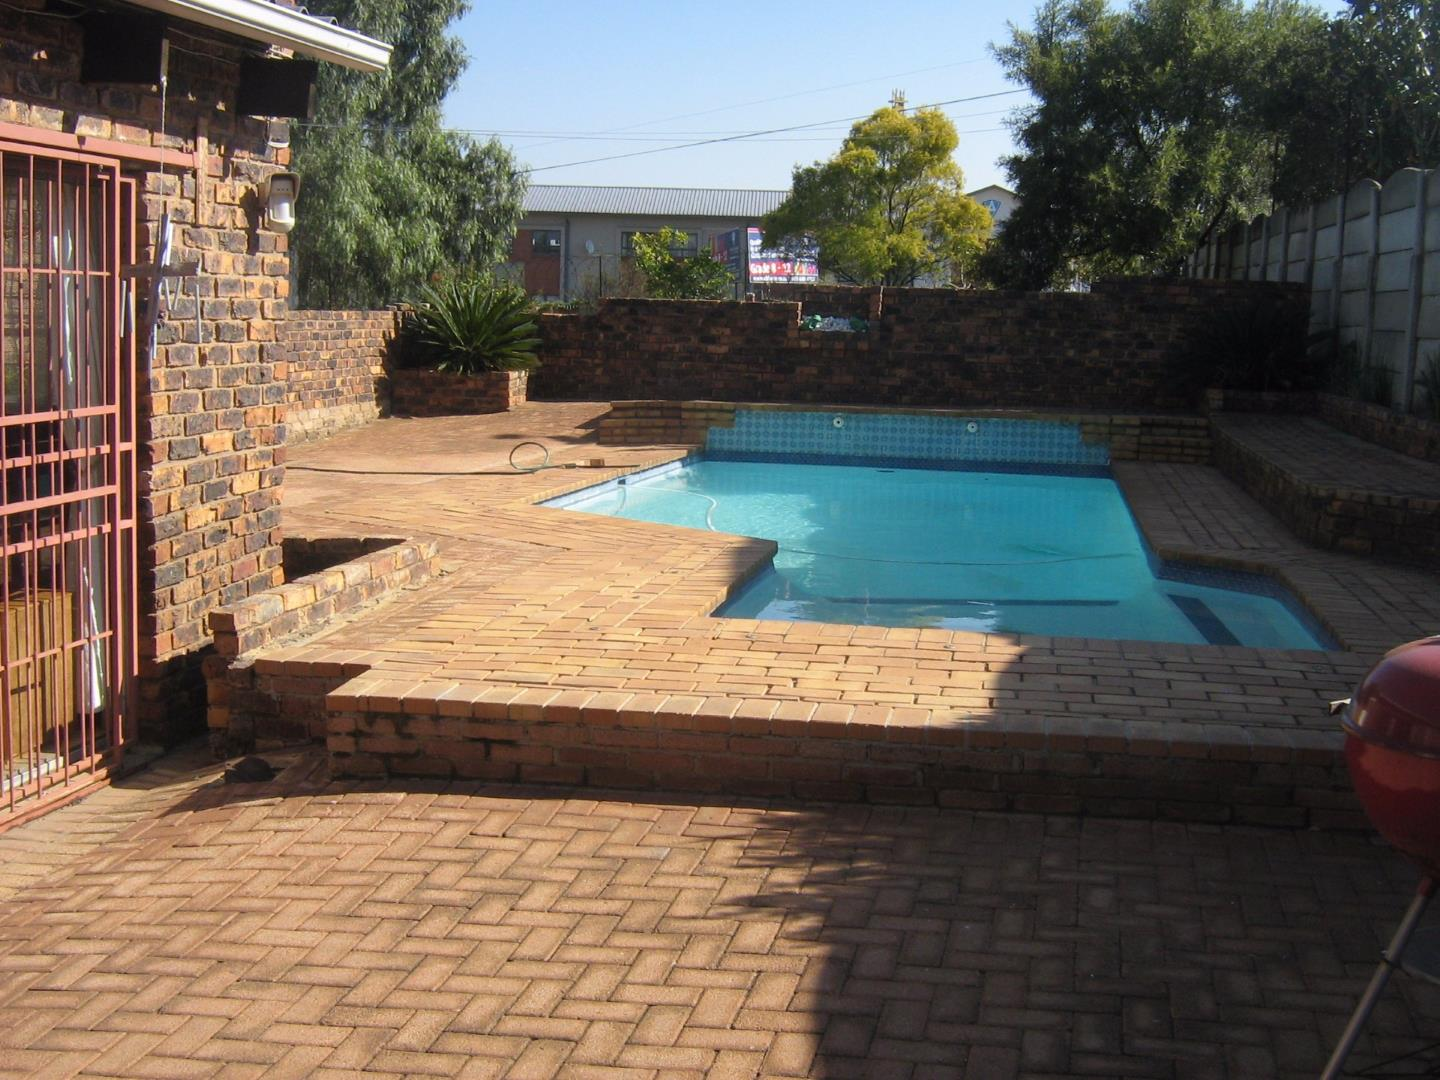 Johannesburg, Suideroord Property  | Houses For Sale Suideroord, Suideroord, House 4 bedrooms property for sale Price:1,680,000